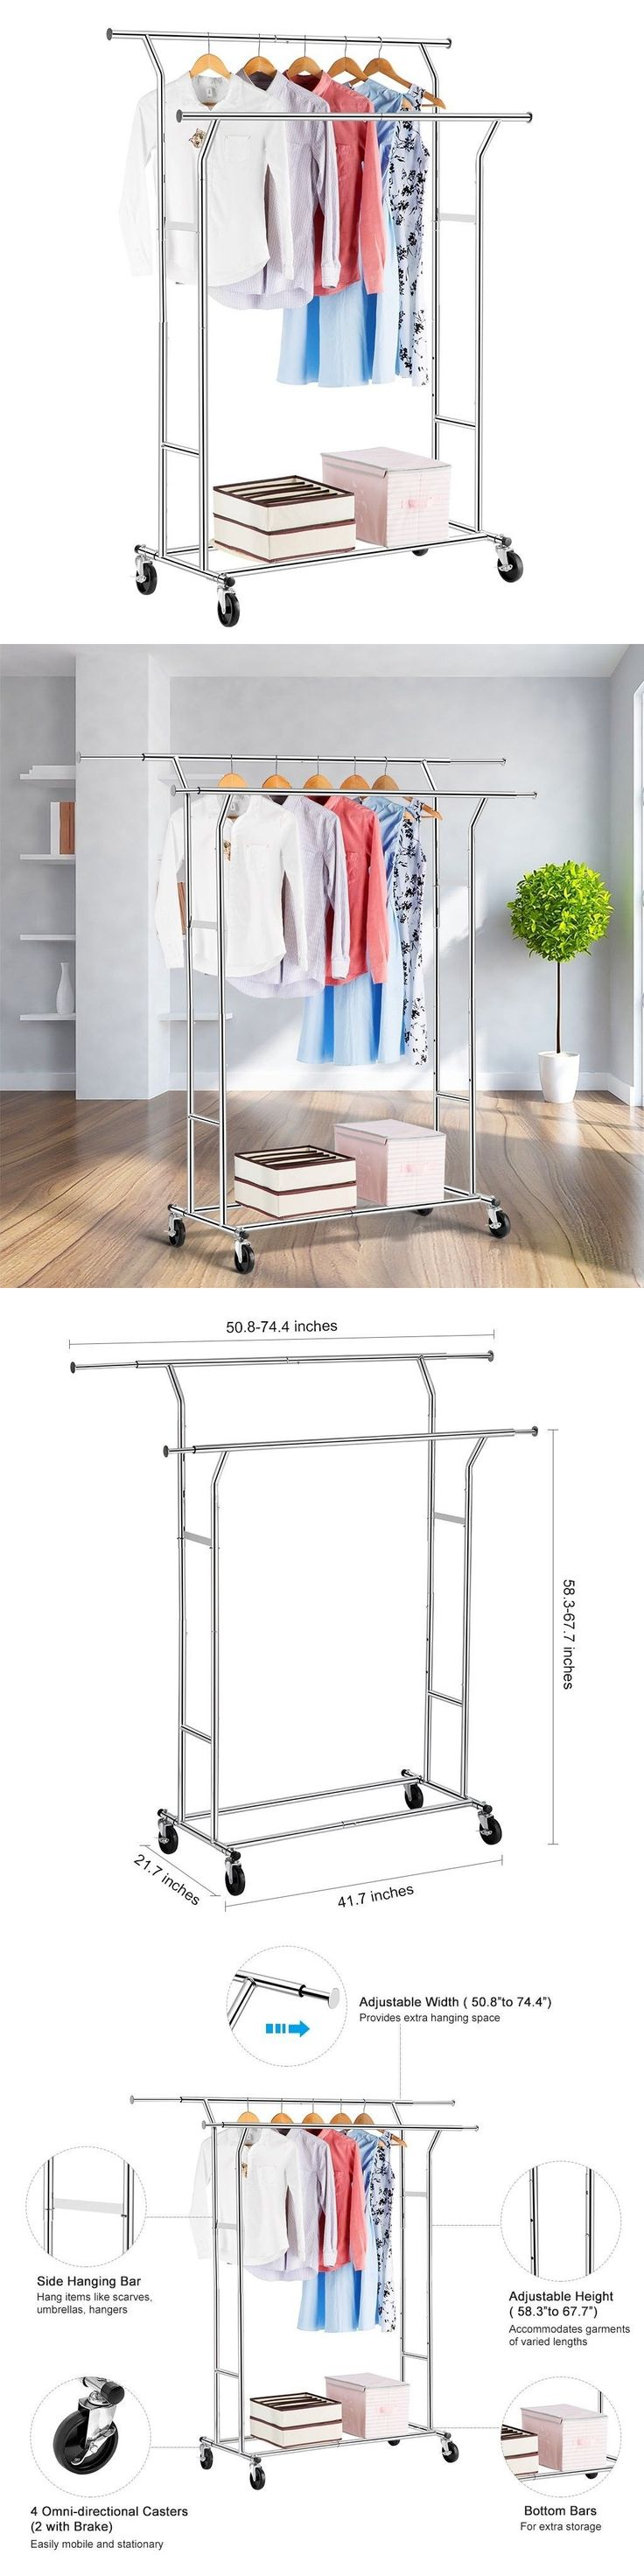 Garment Racks 166325: Commercial Grade Double Rail Clothes Rack Supreme Steel Garment Rack, Ad -> BUY IT NOW ONLY: $80 on eBay!